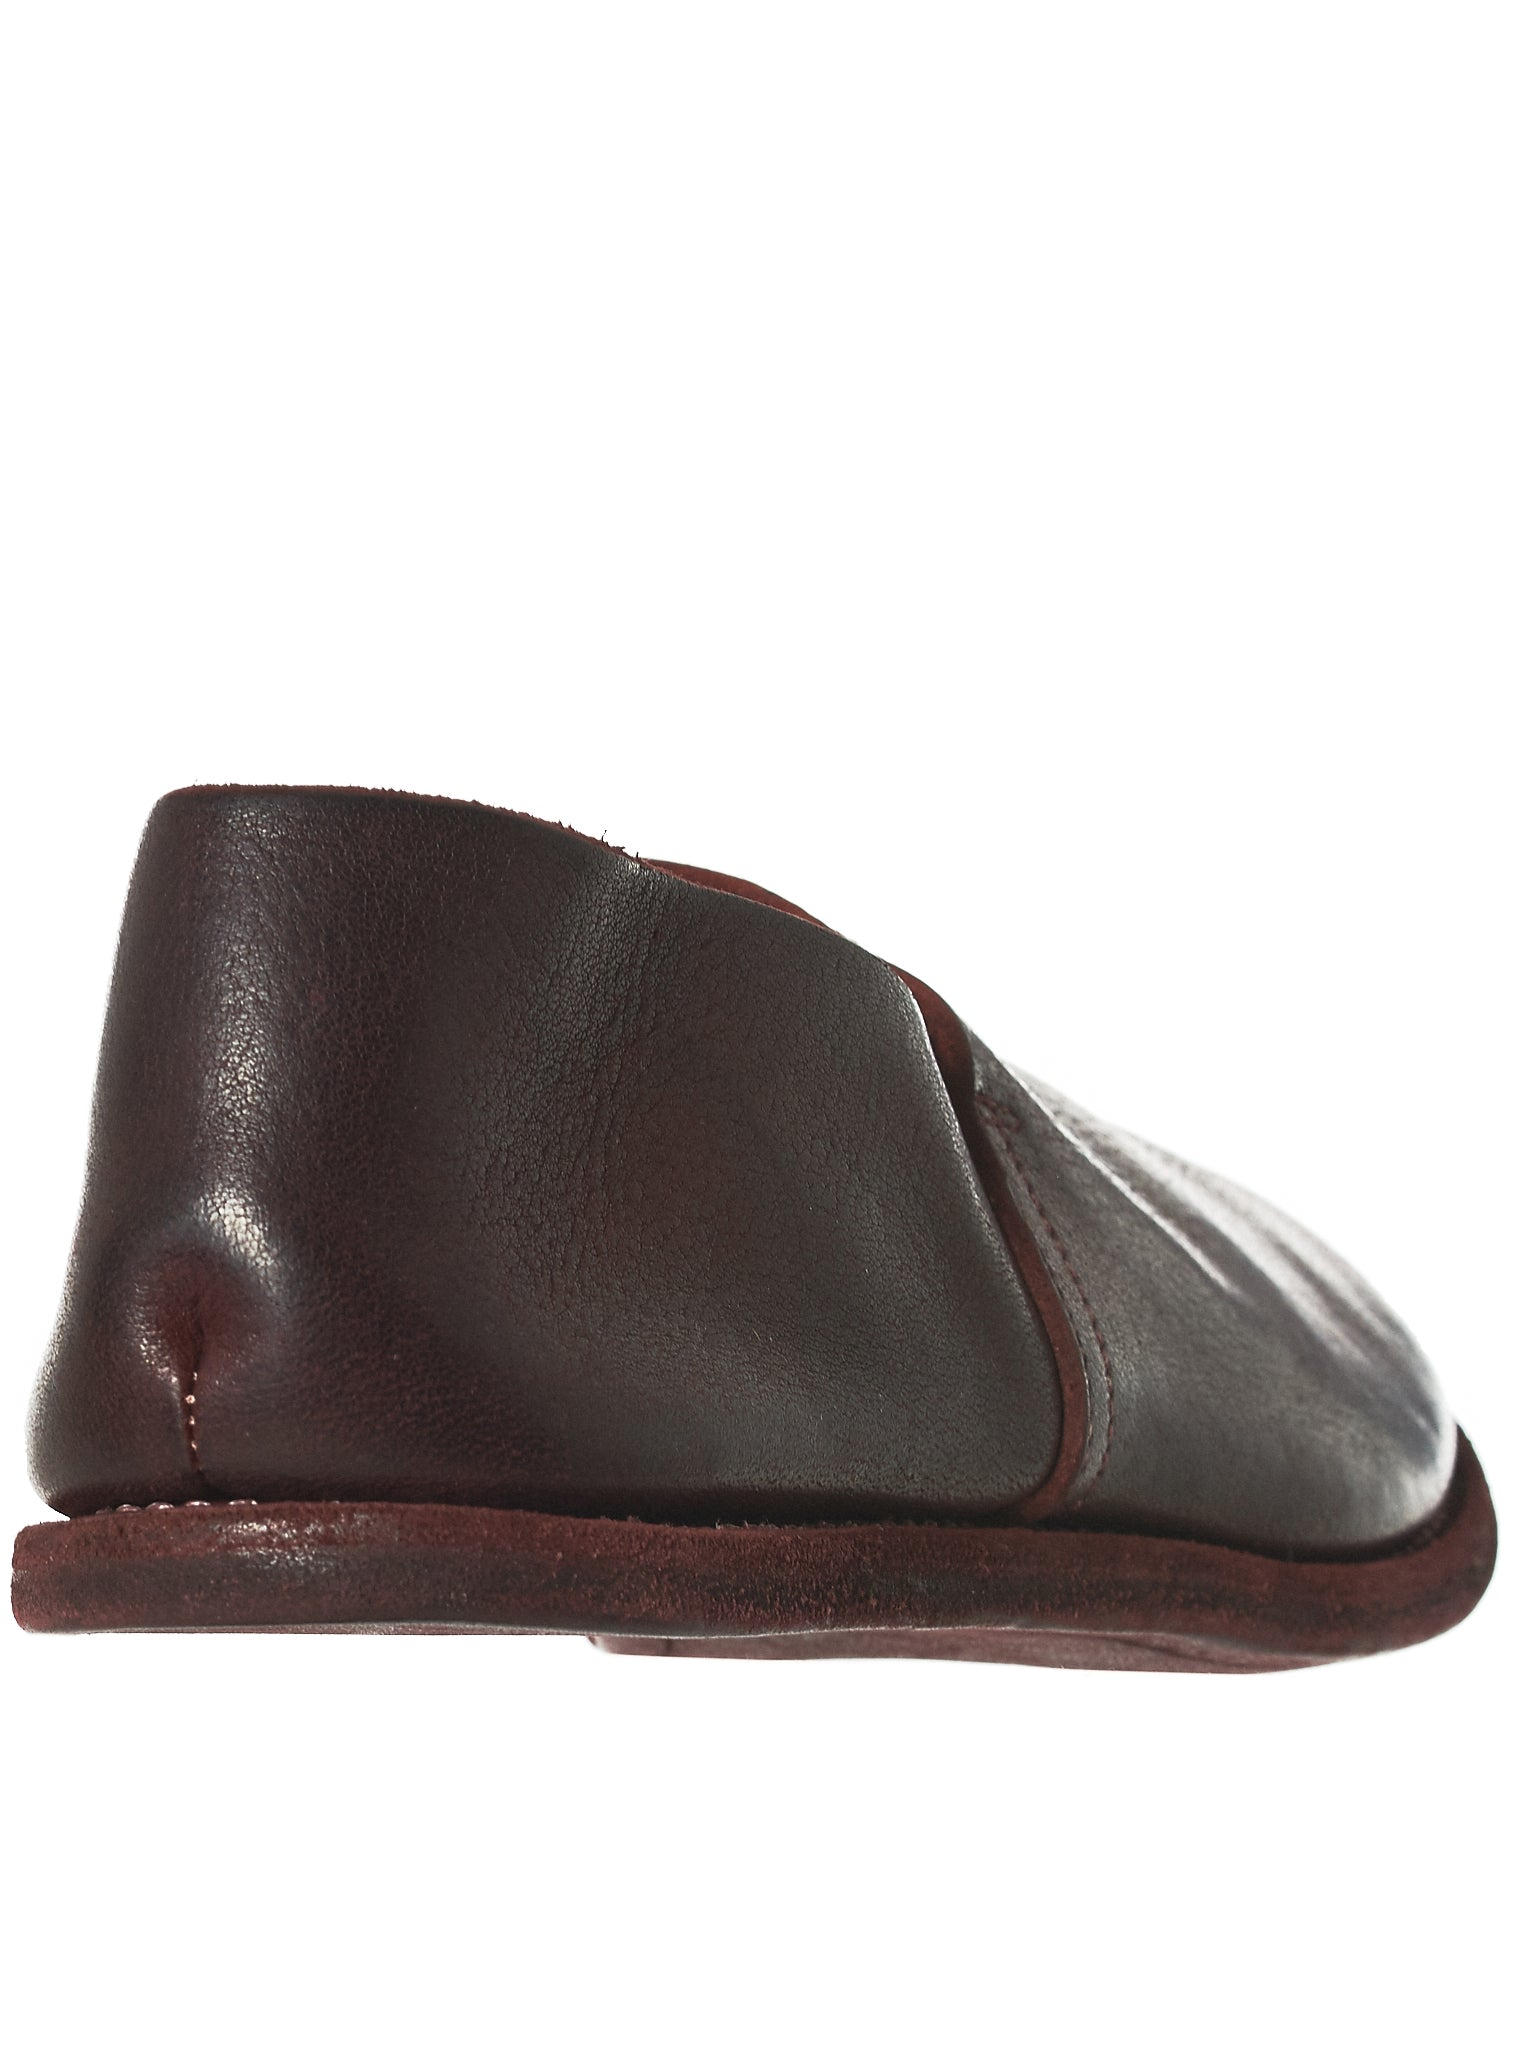 Guidi Calfskin Loafers - Hlorenzo Detail 3